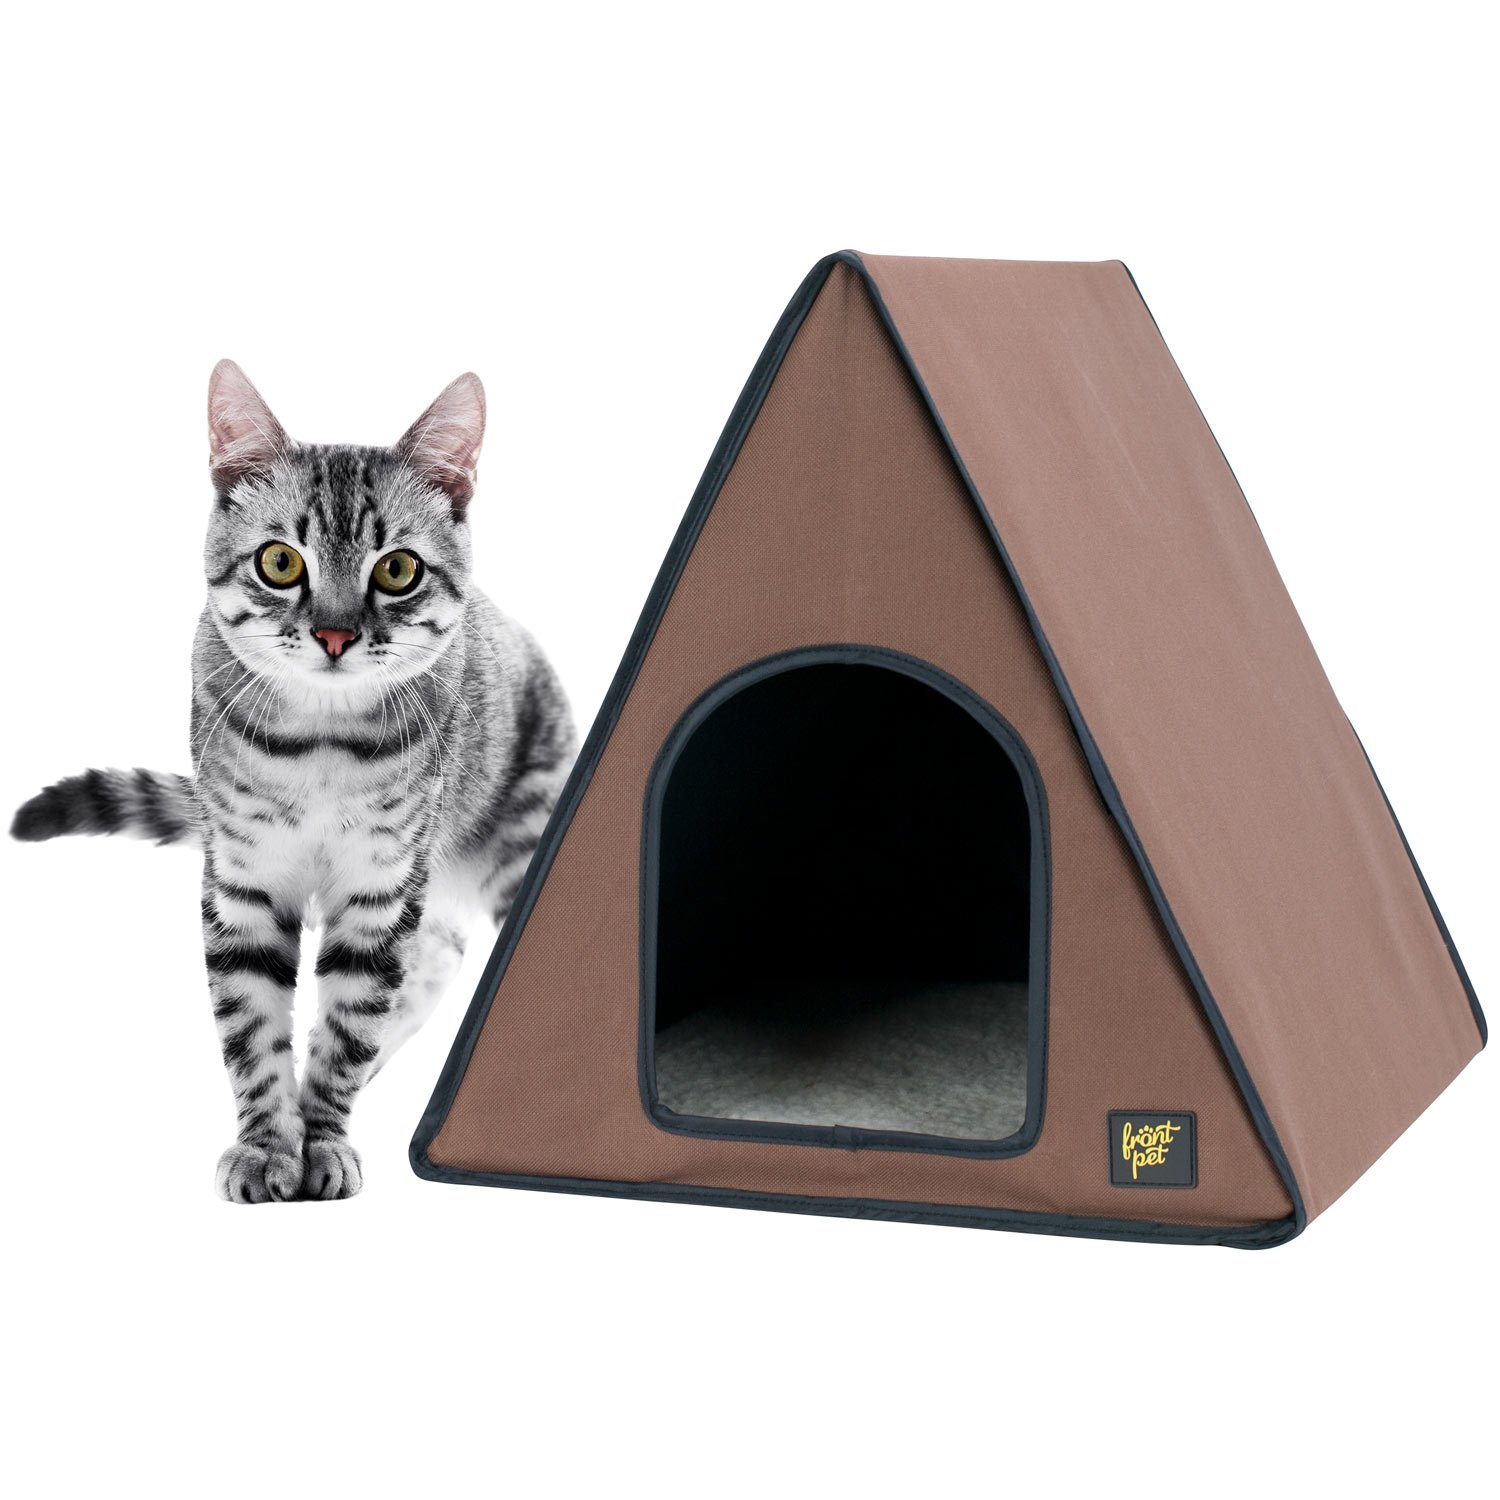 Frontpet A-Frame Heated Cat House FBA_FRO-AHCH